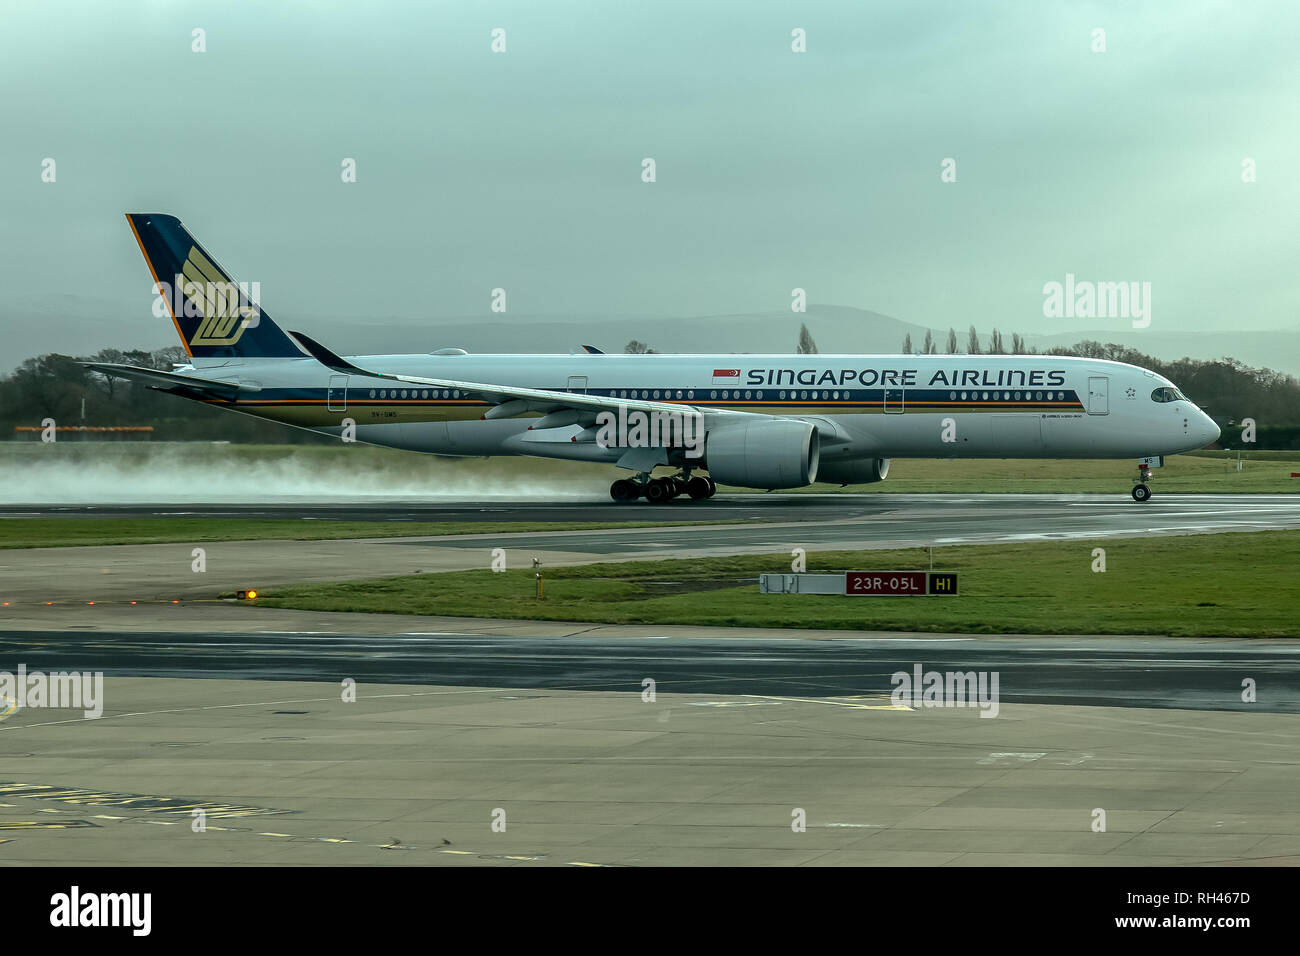 A Singapore Airlines Airbus A350, registered 9V-SMS, landing at Manchester Airport in England. - Stock Image